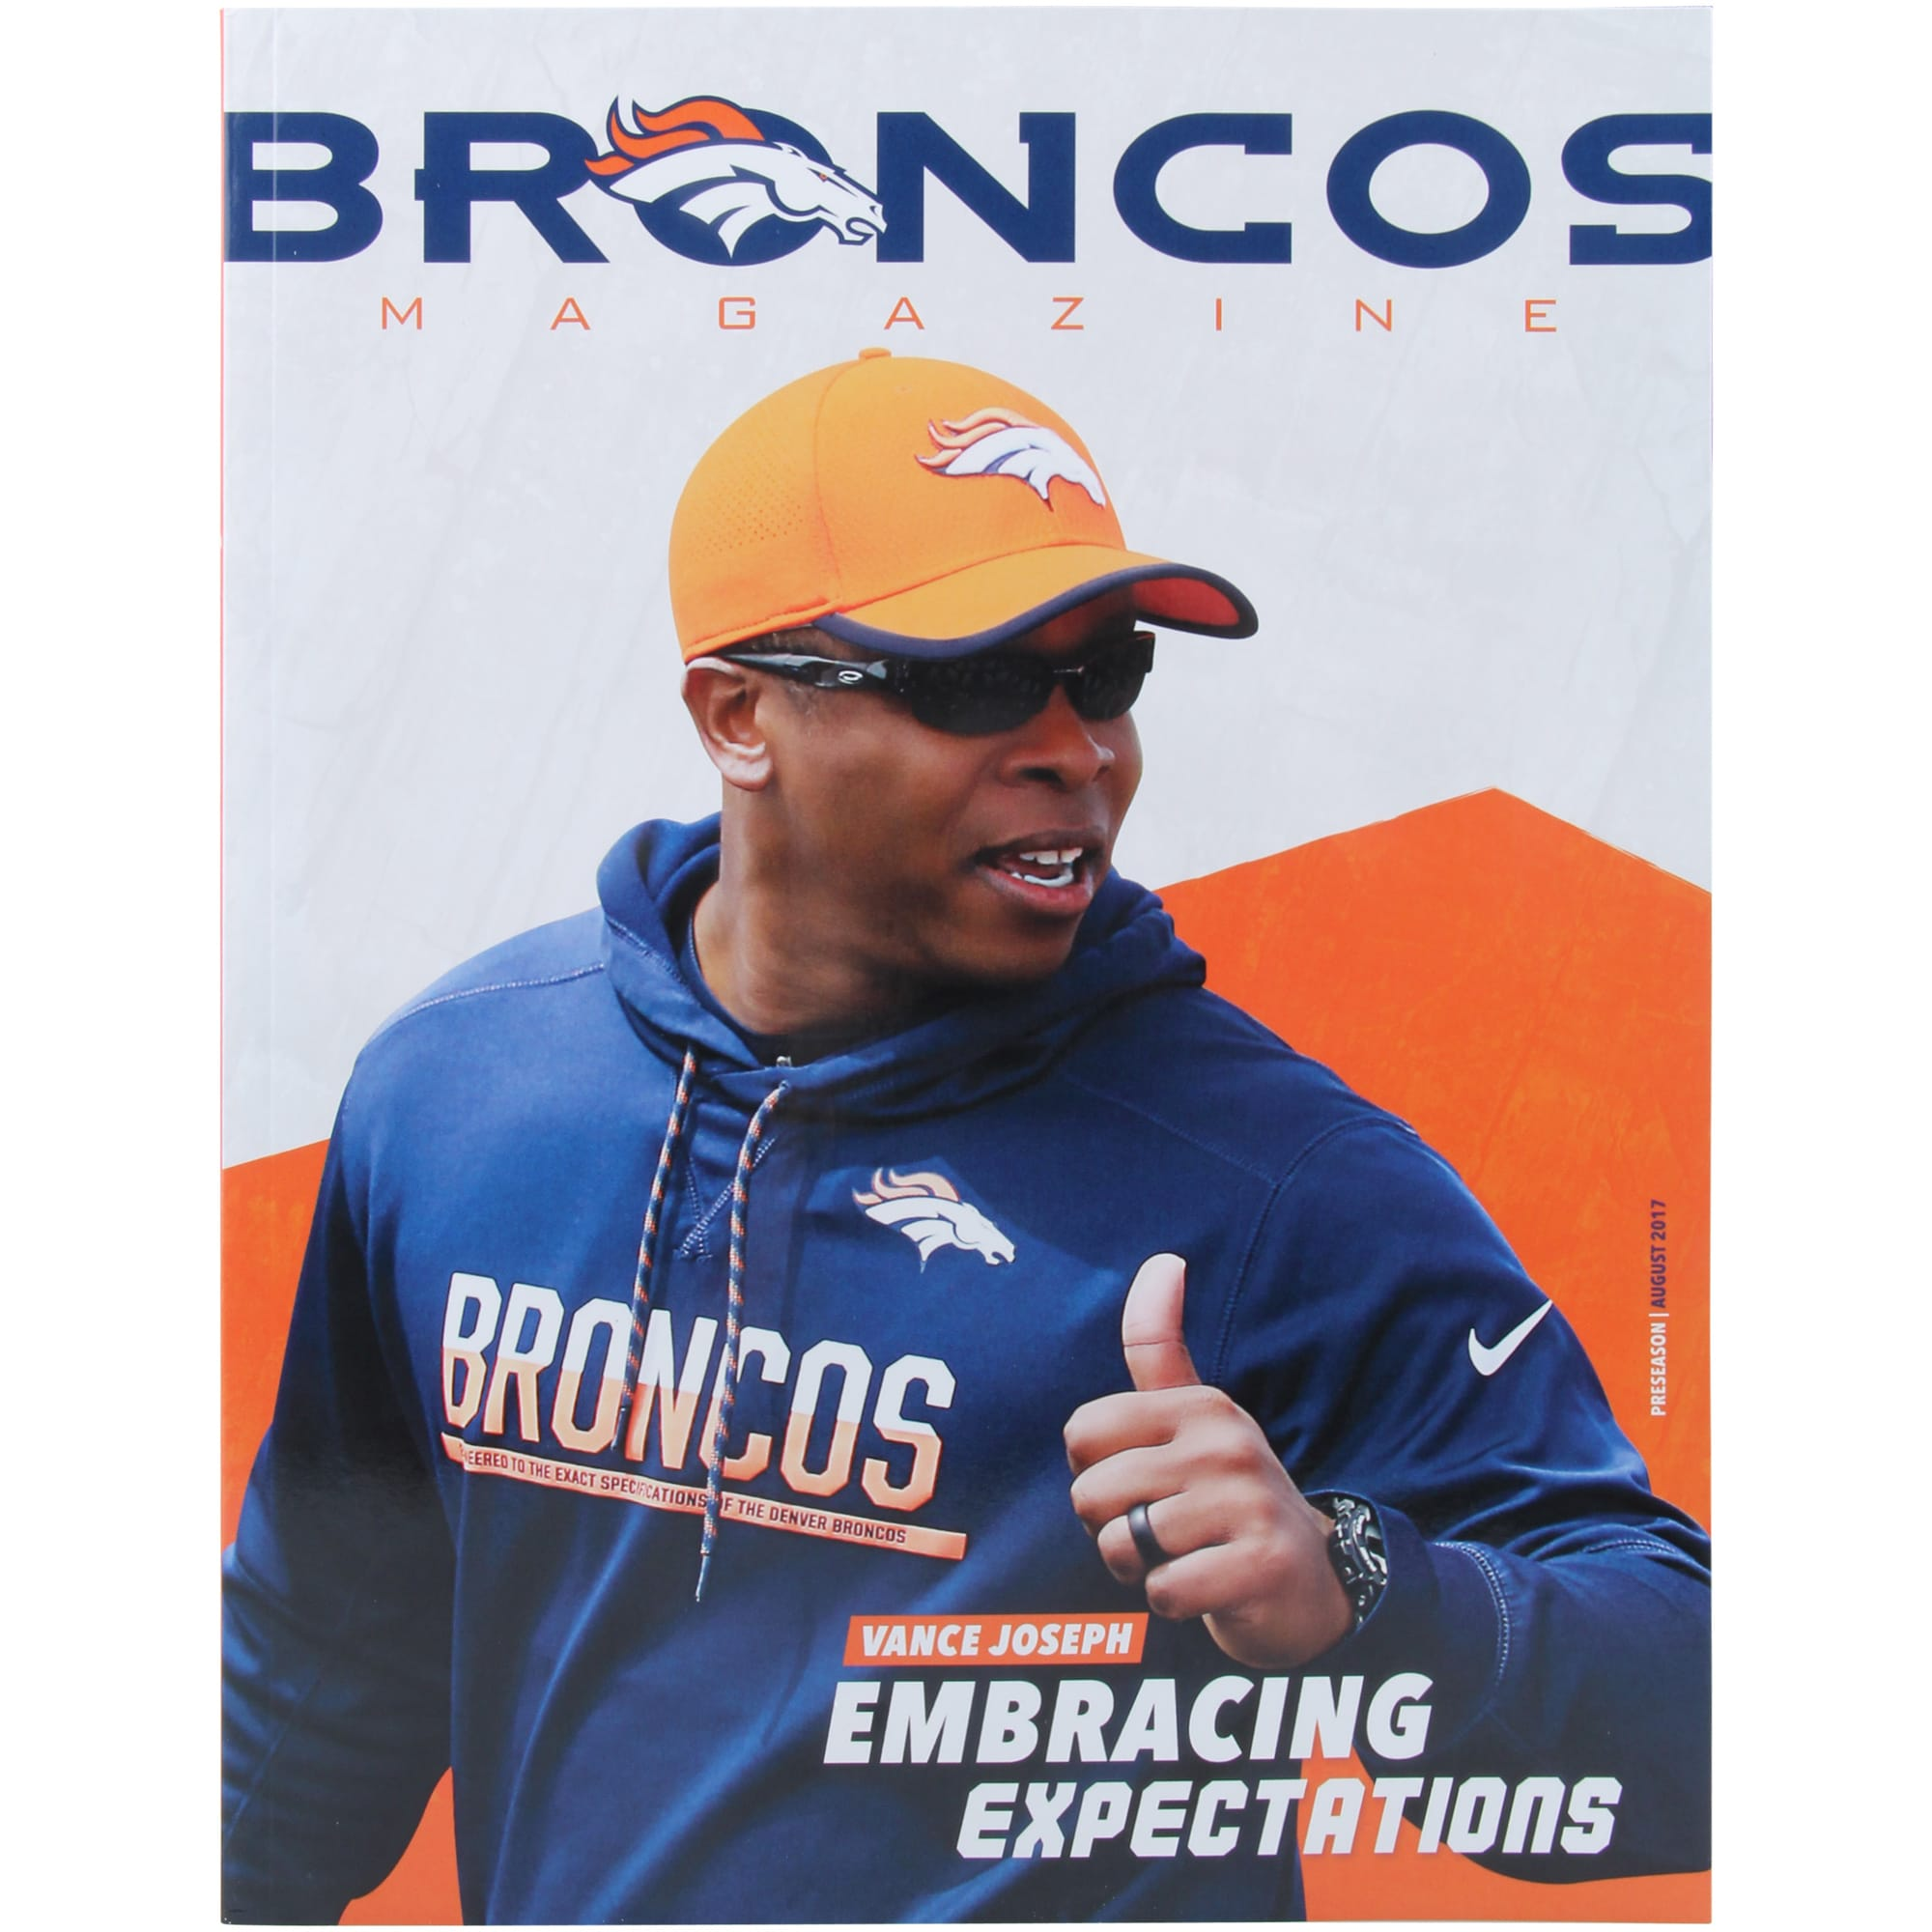 Denver Broncos 2017 Yearbook